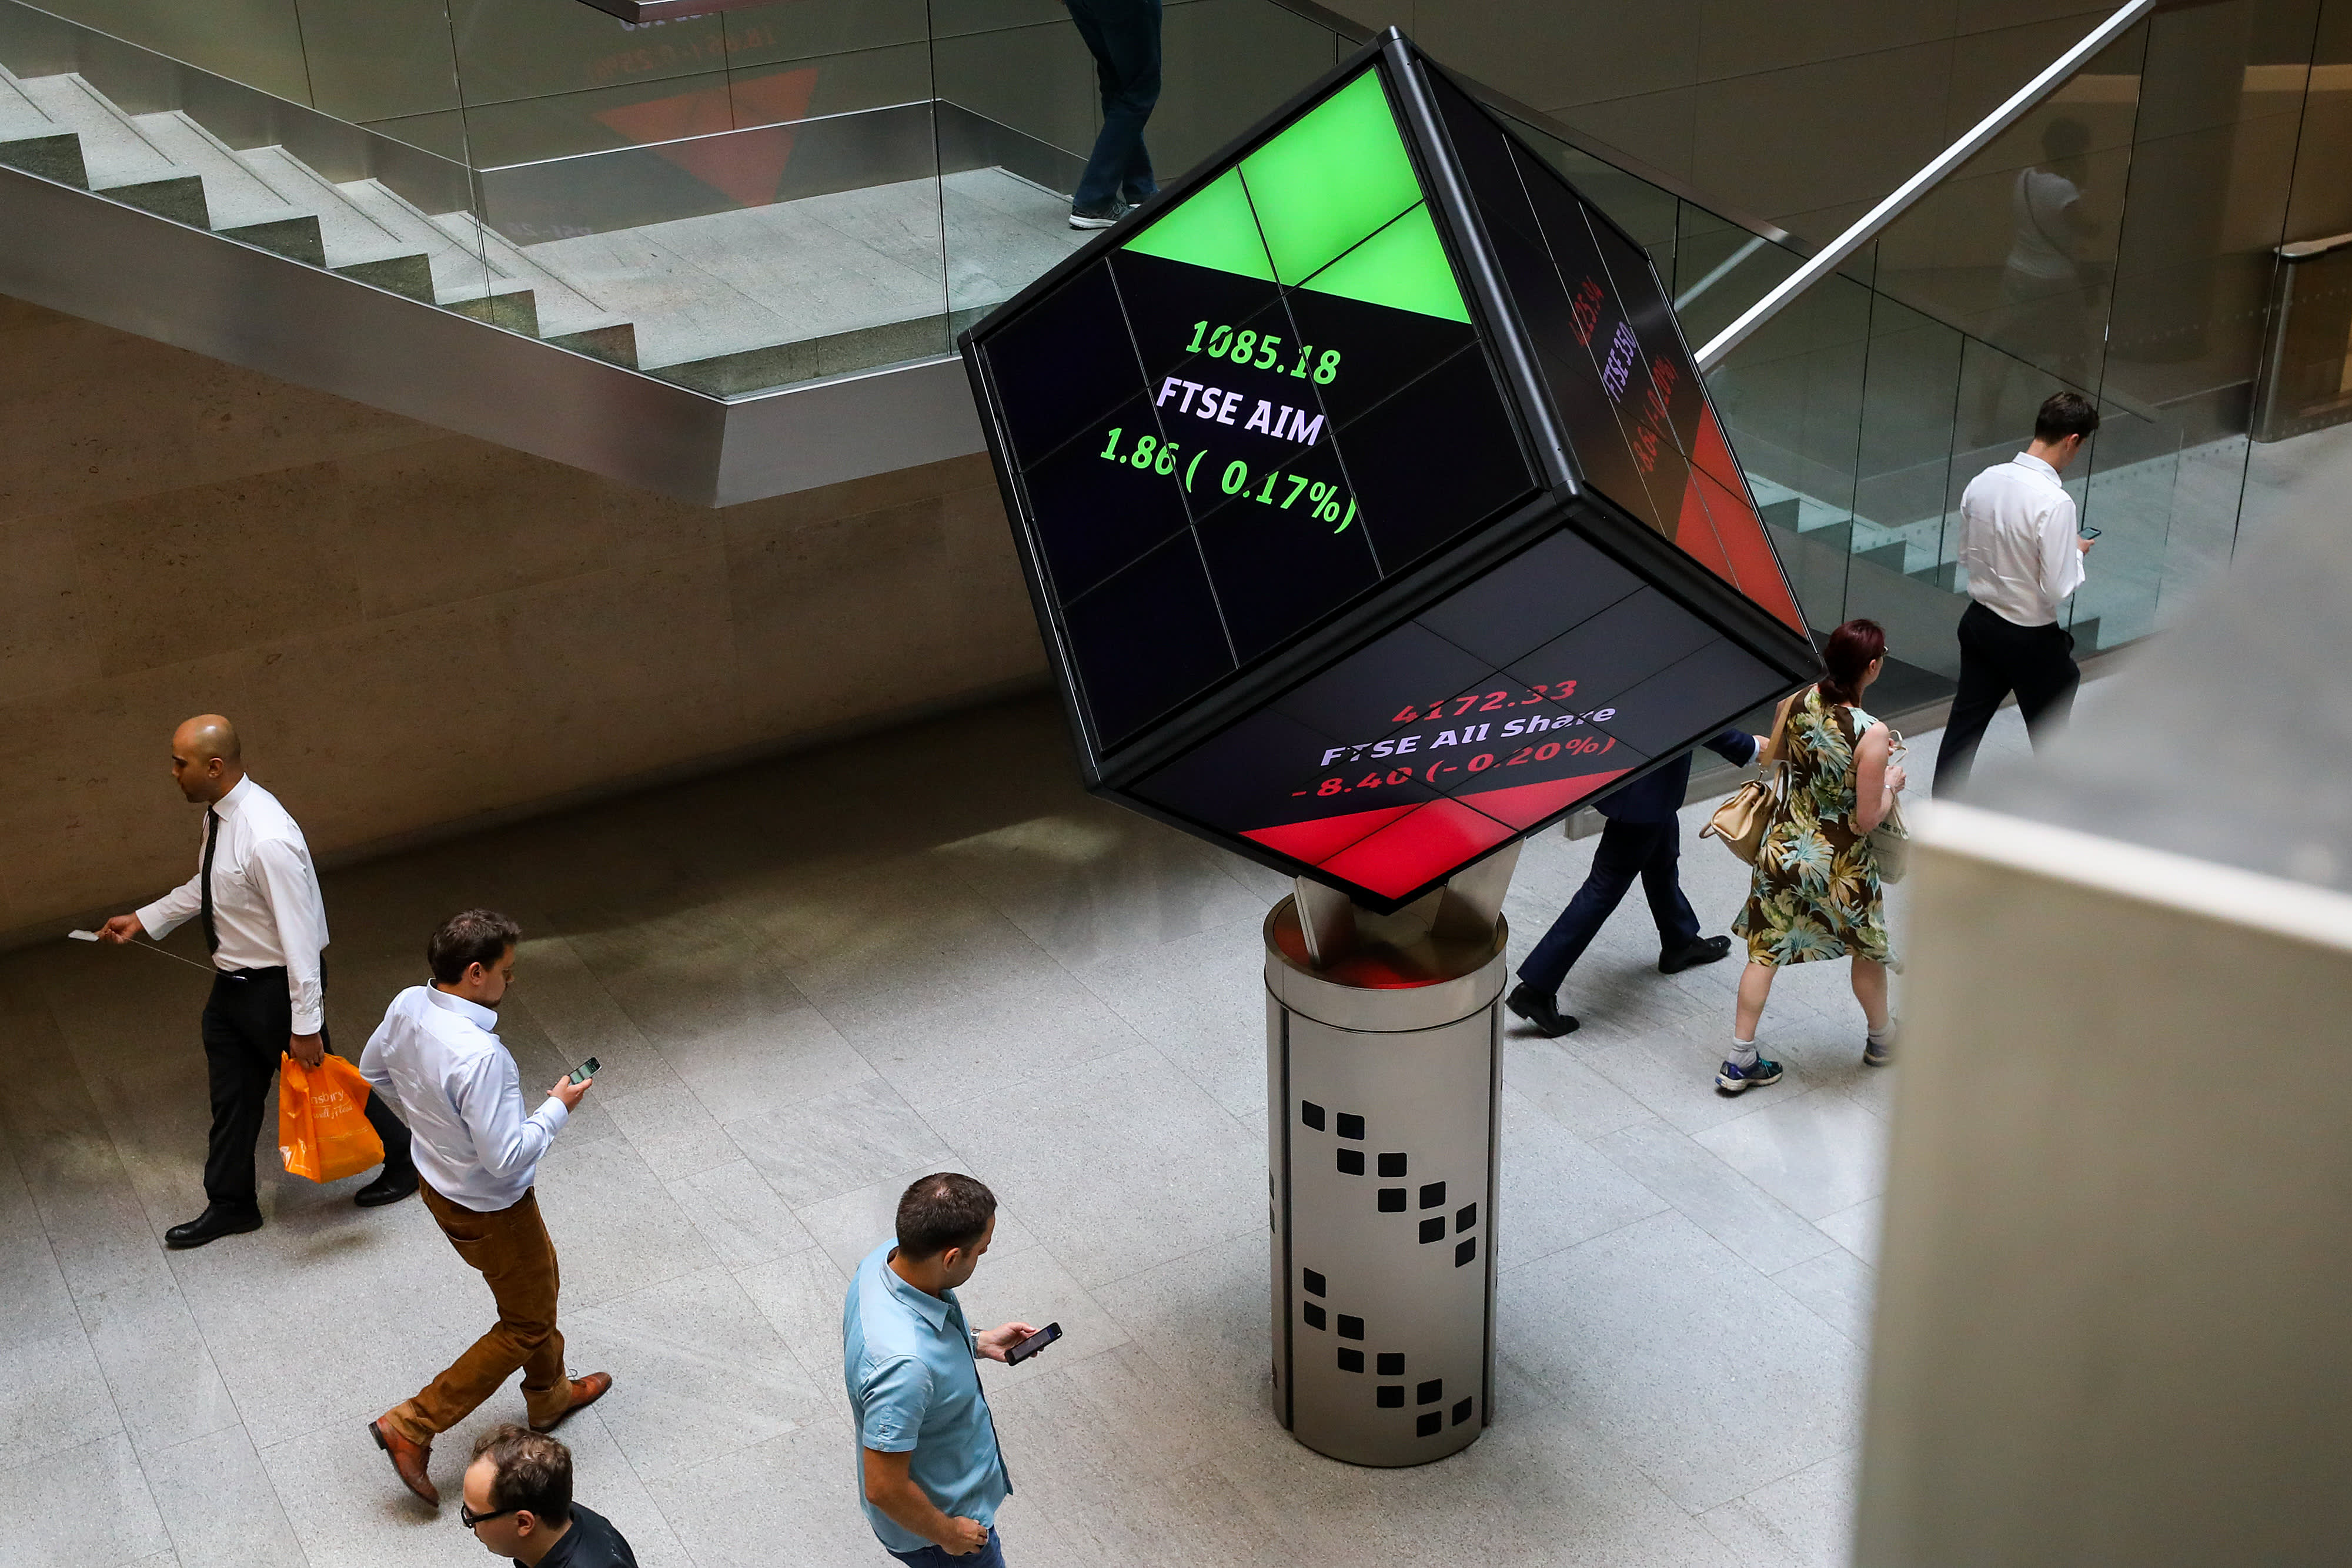 Hong Kong stock exchange could find London exchange 'unaffordable,' says strategist